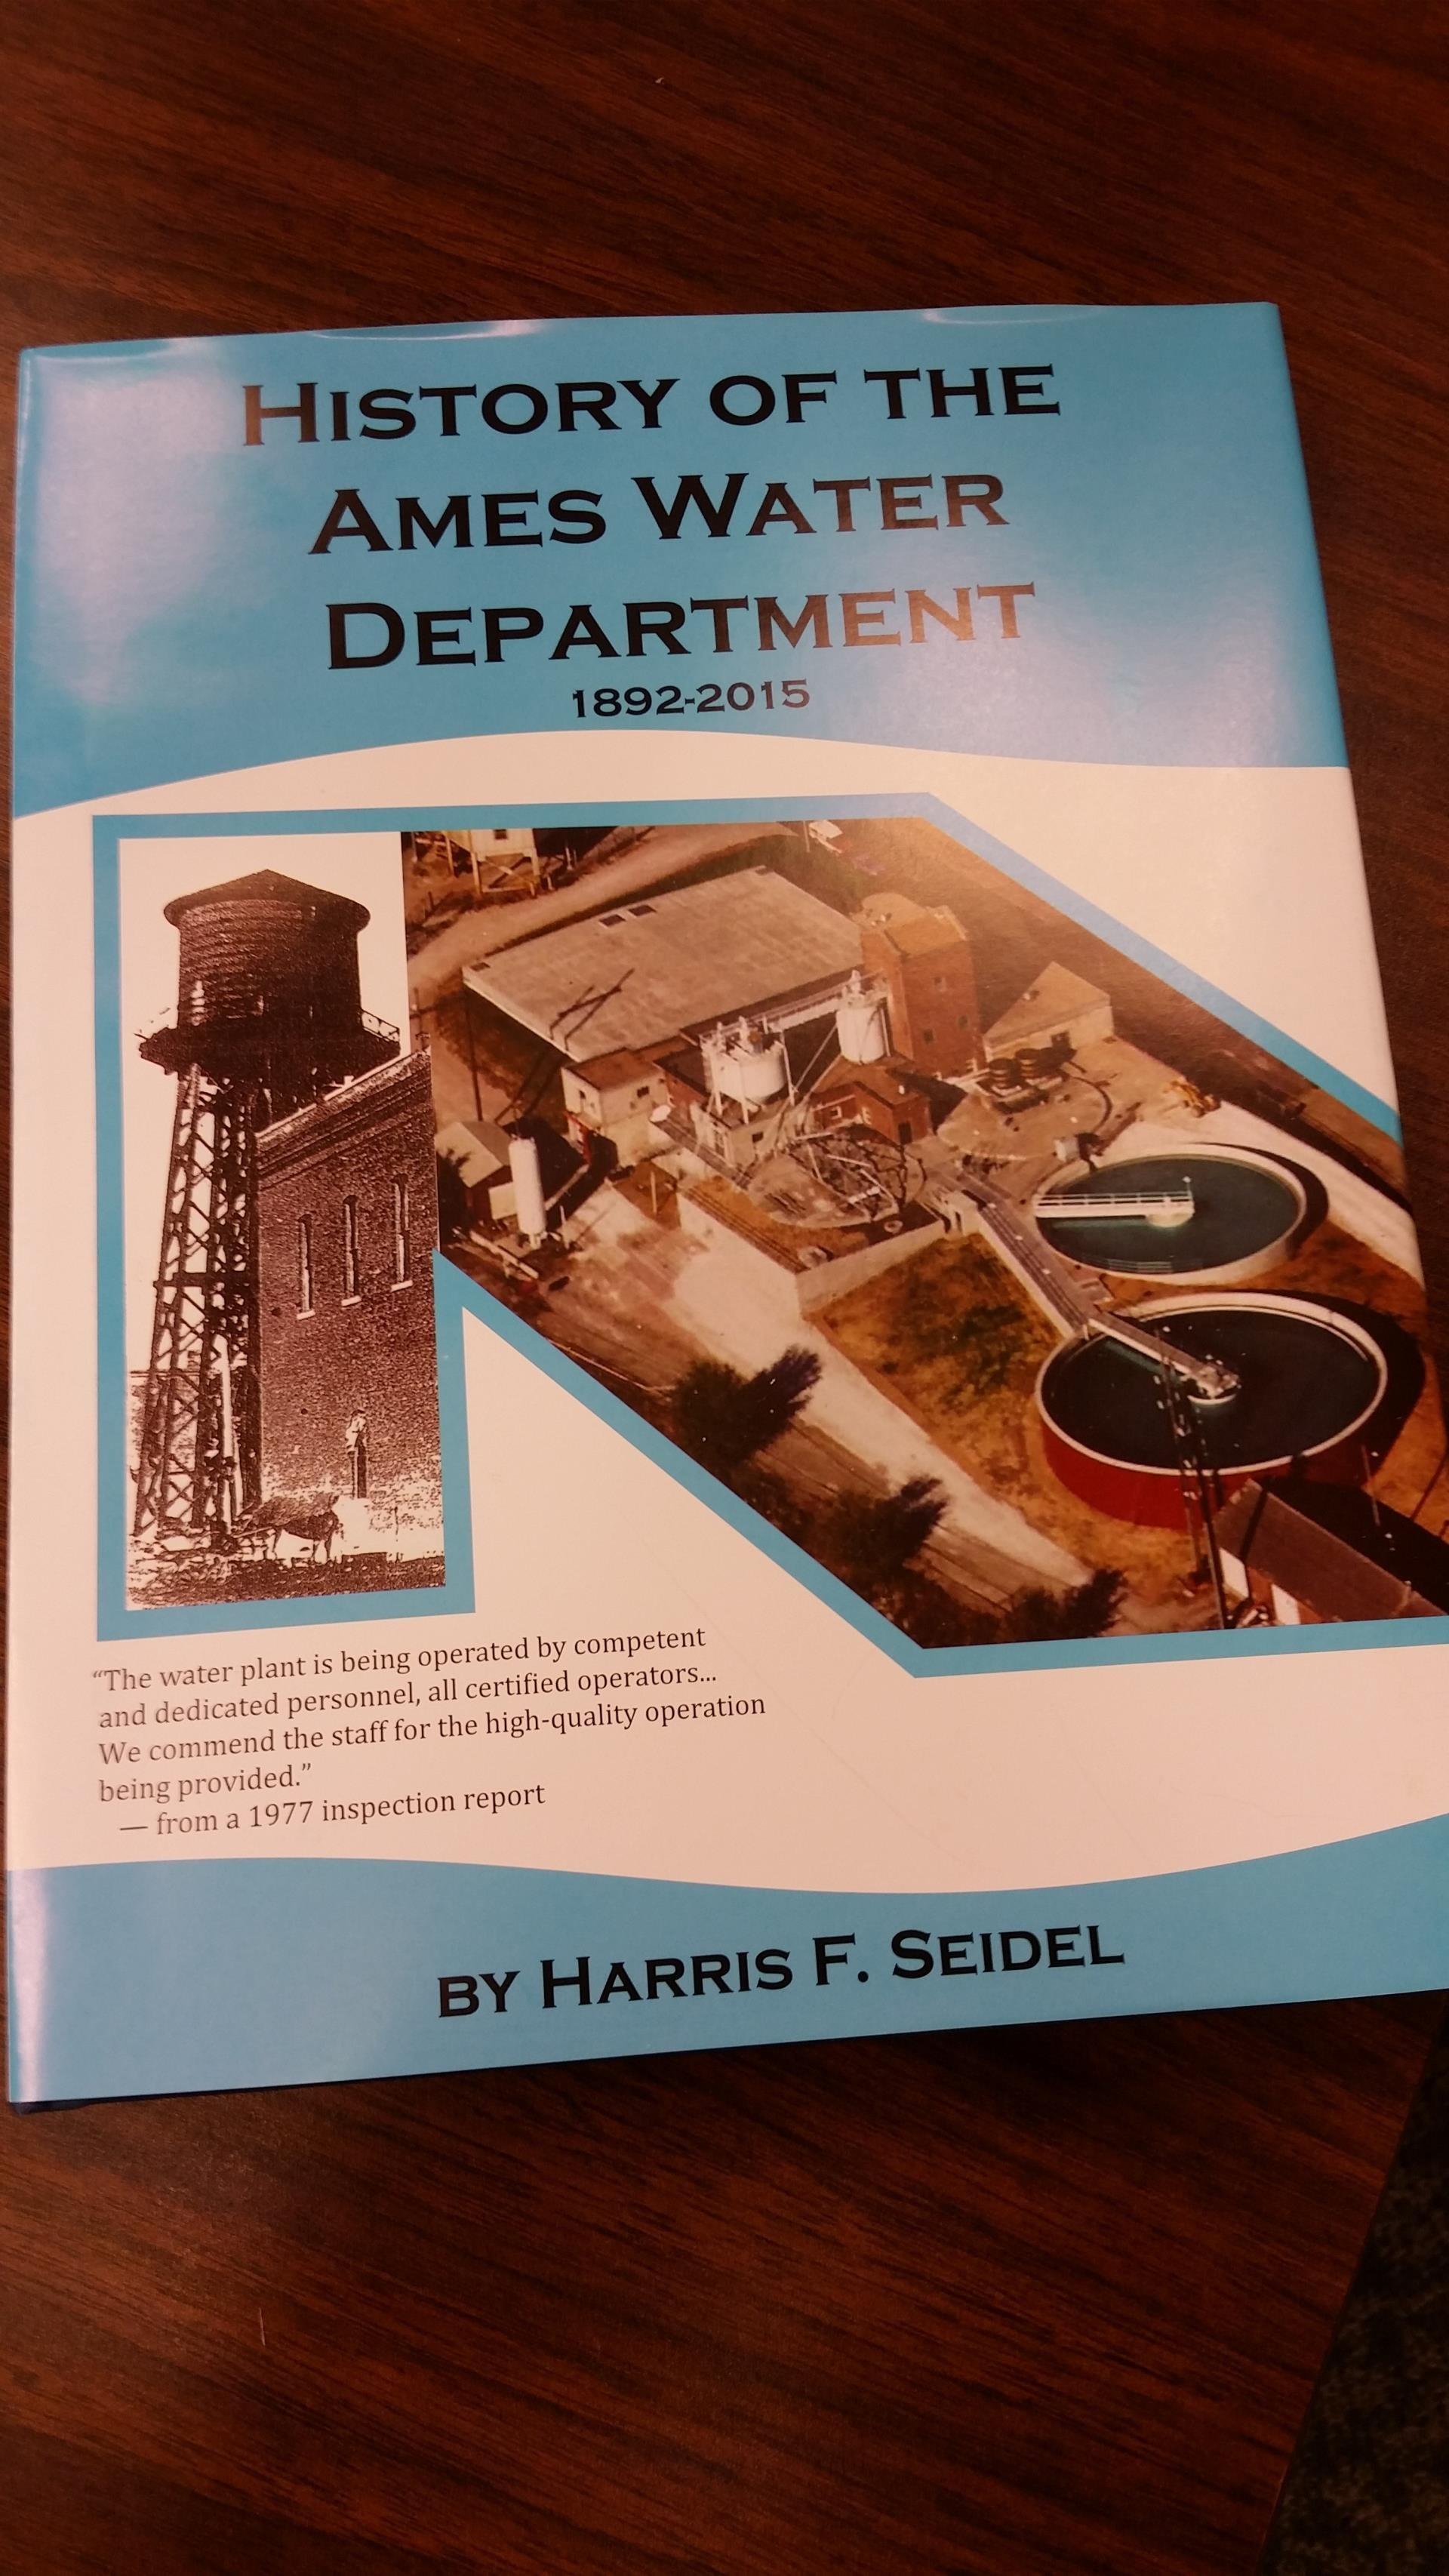 Front cover of History of the Ames Water Department book